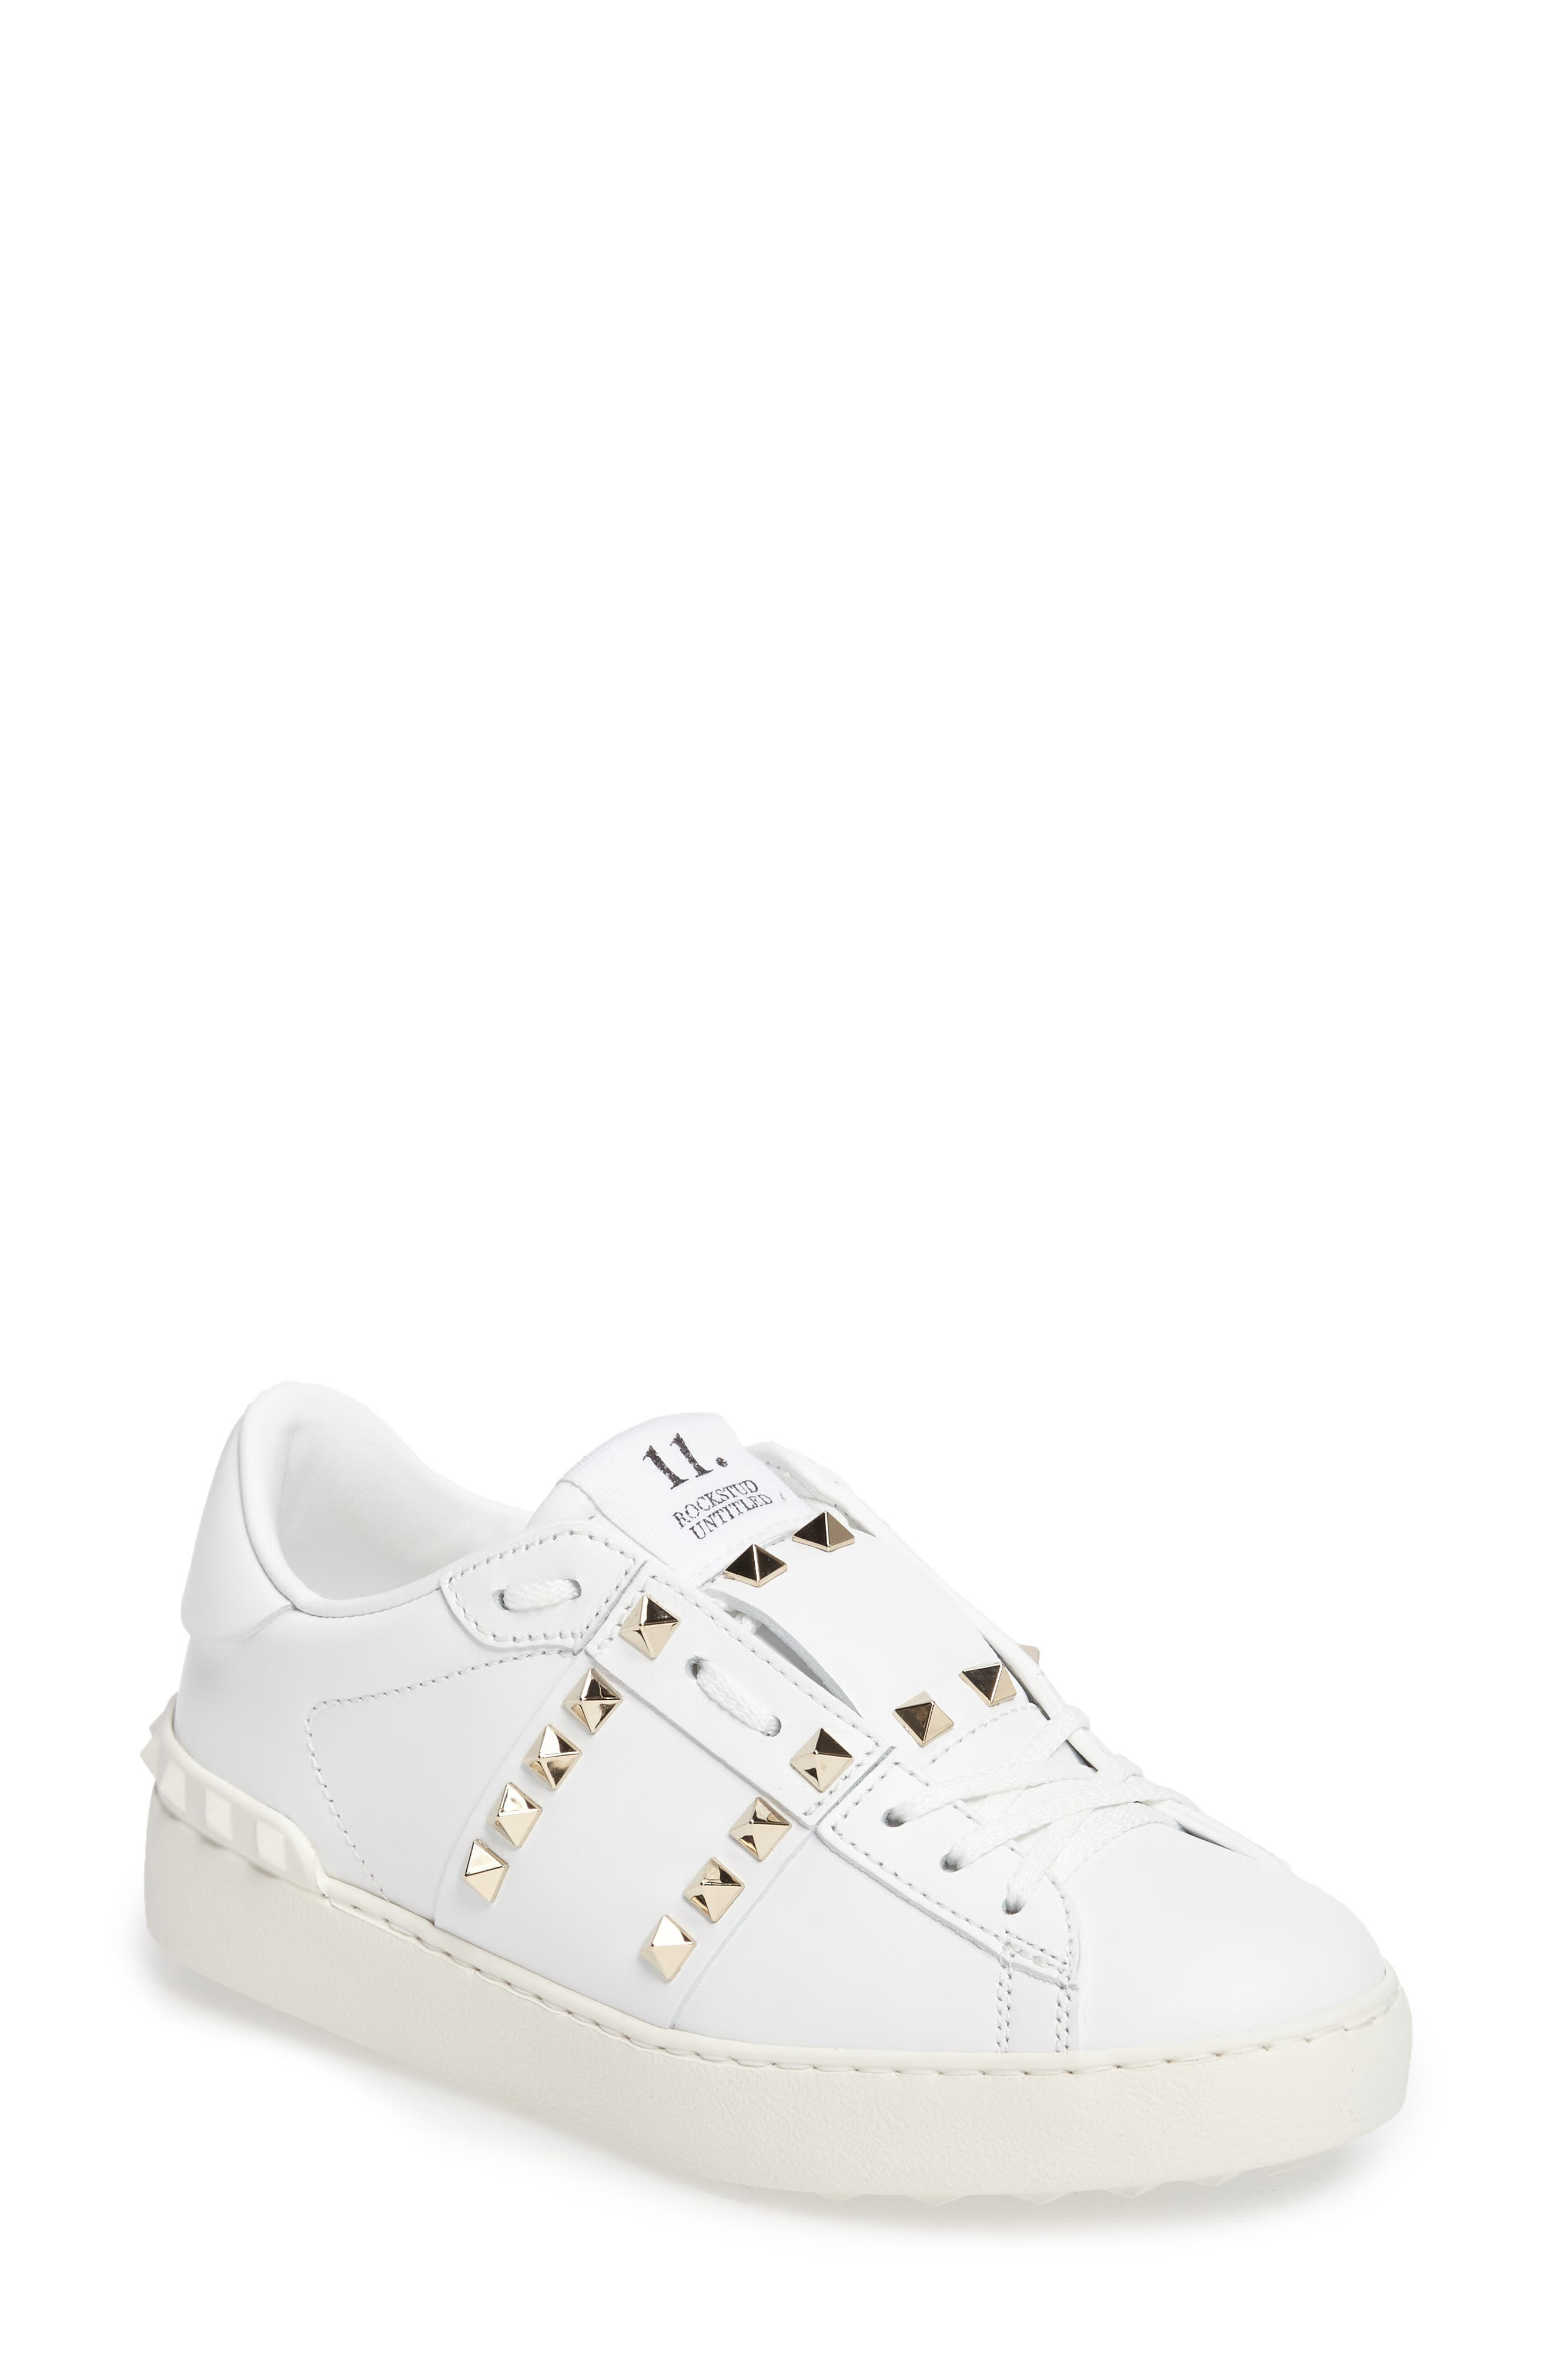 'Rockstud' Sneaker,                             Main thumbnail 1, color,                             WHITE LEATHER